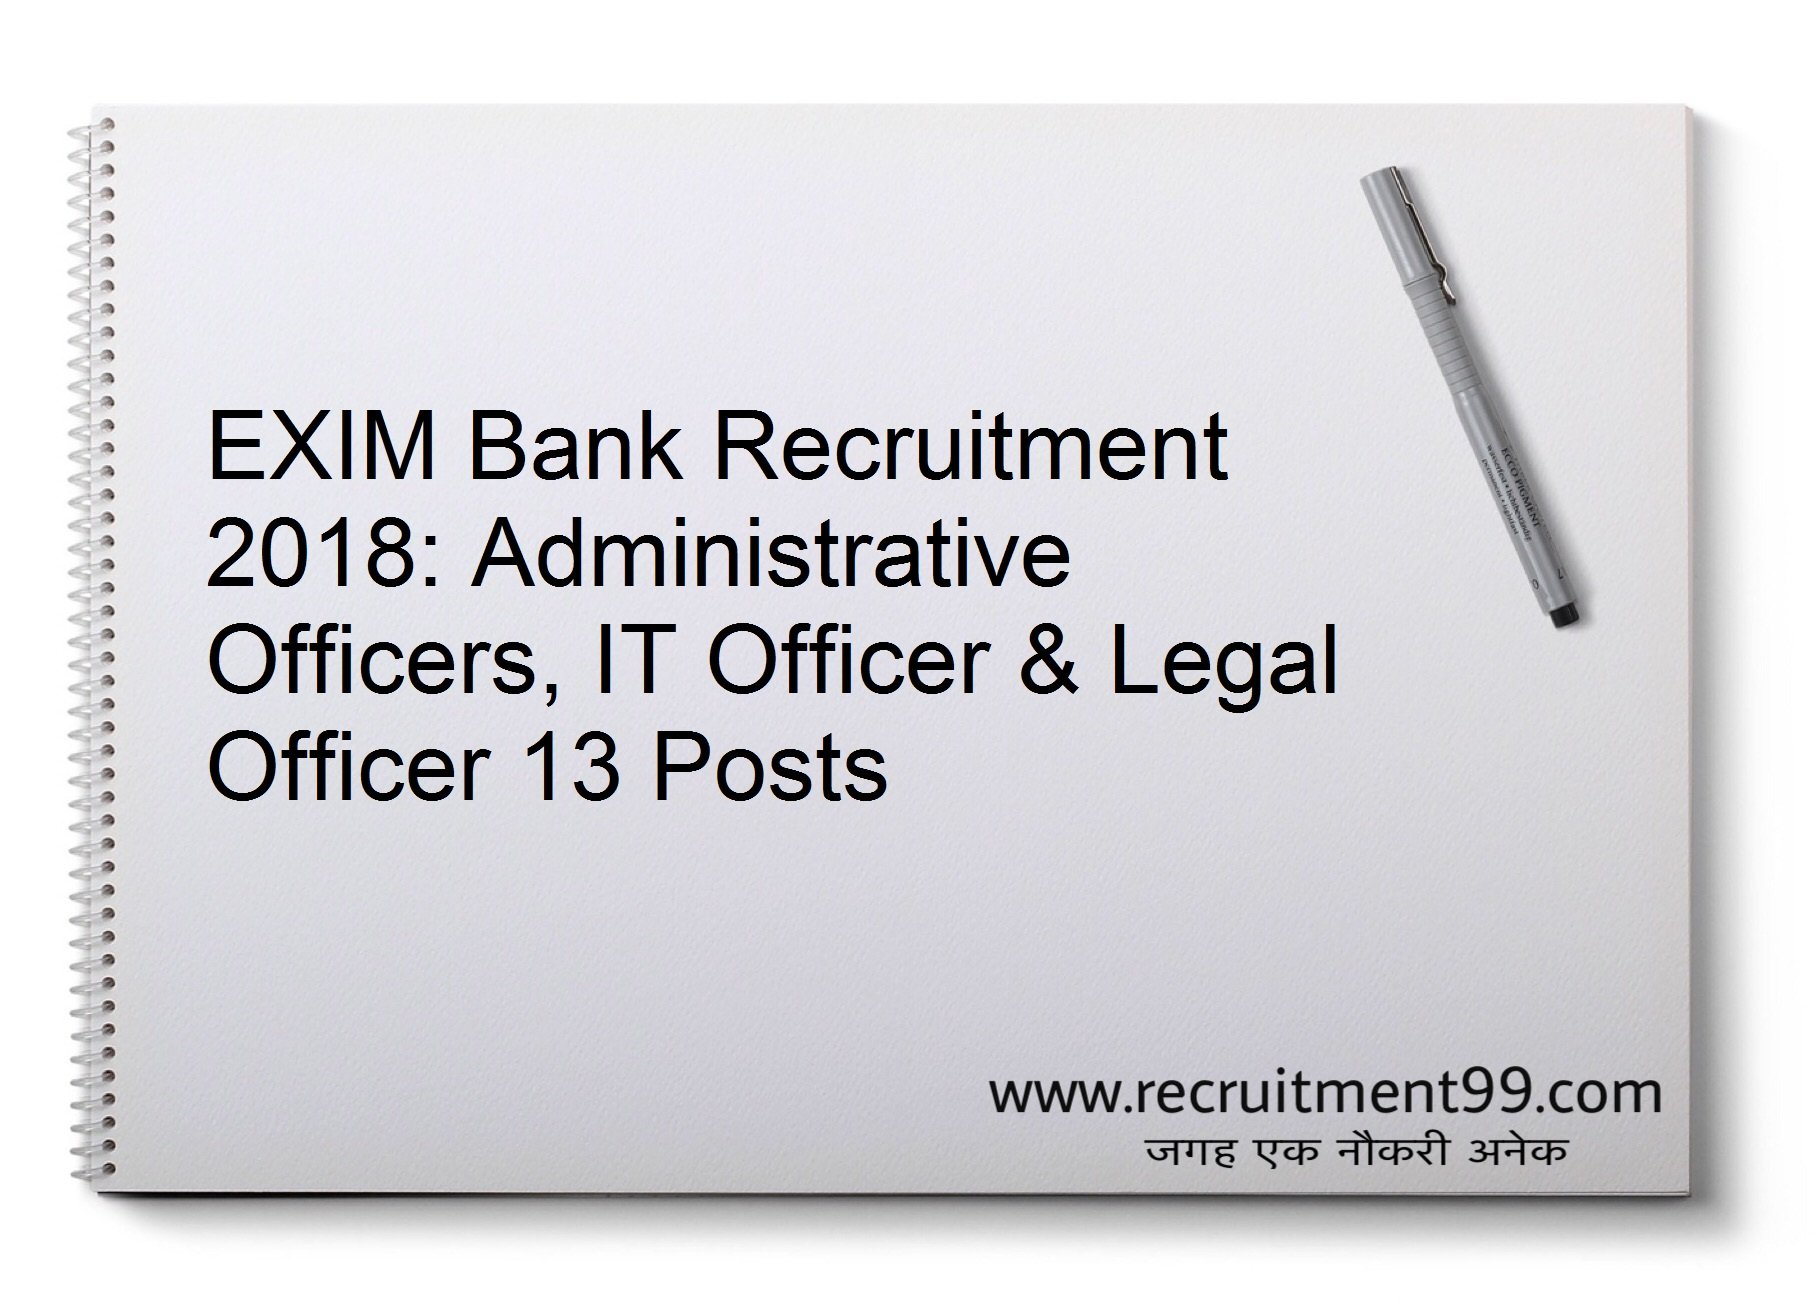 EXIM Bank AO, IT Officer, Legal Officer Recruitment, Admit Card & Result 2018